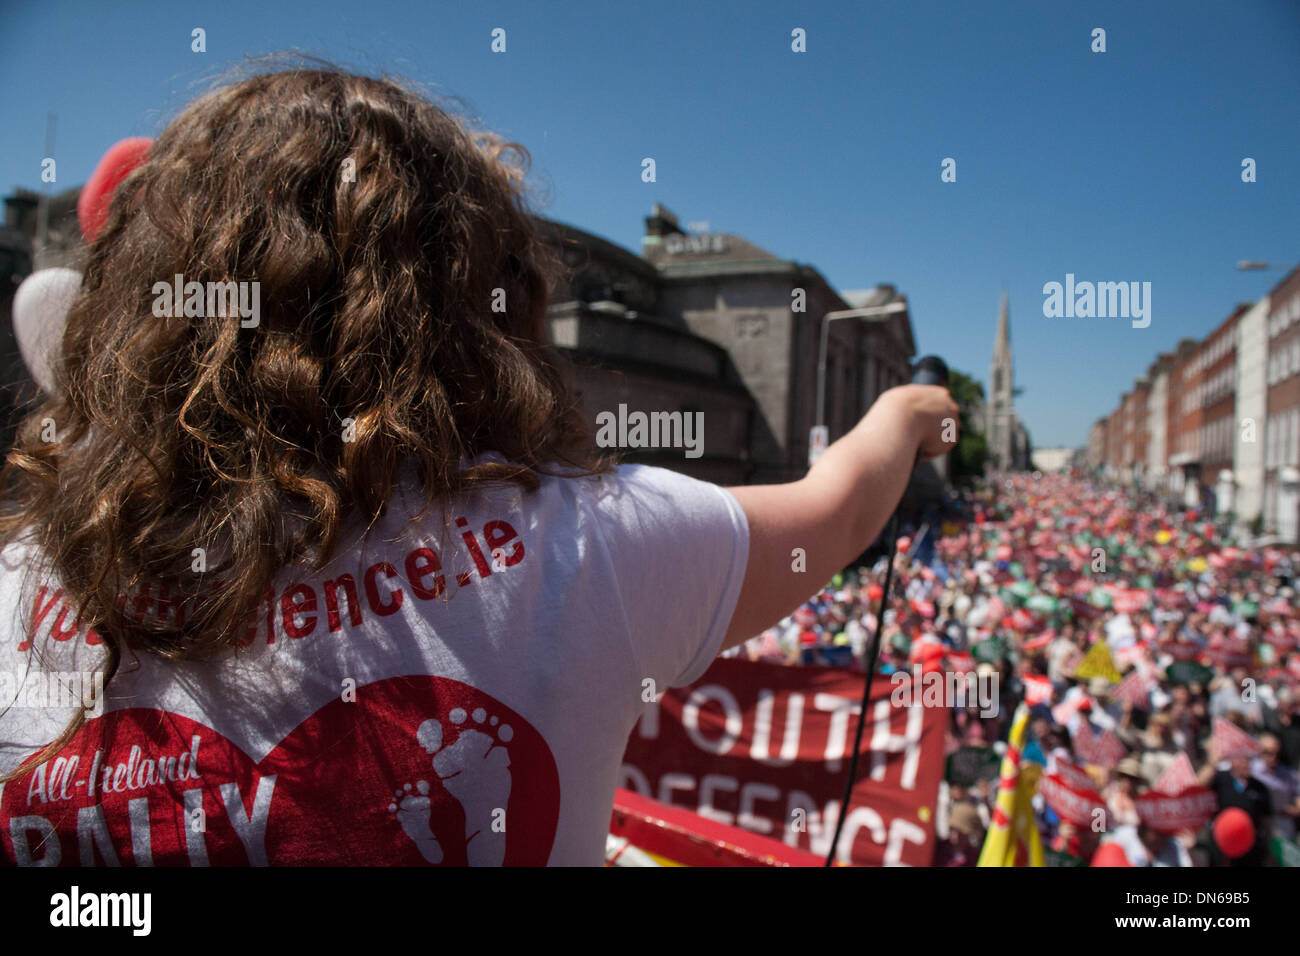 One of the organisers of the All Ireland Rally for life calls out to the 60,000 strong crowd there to protest against Abortion - Stock Image